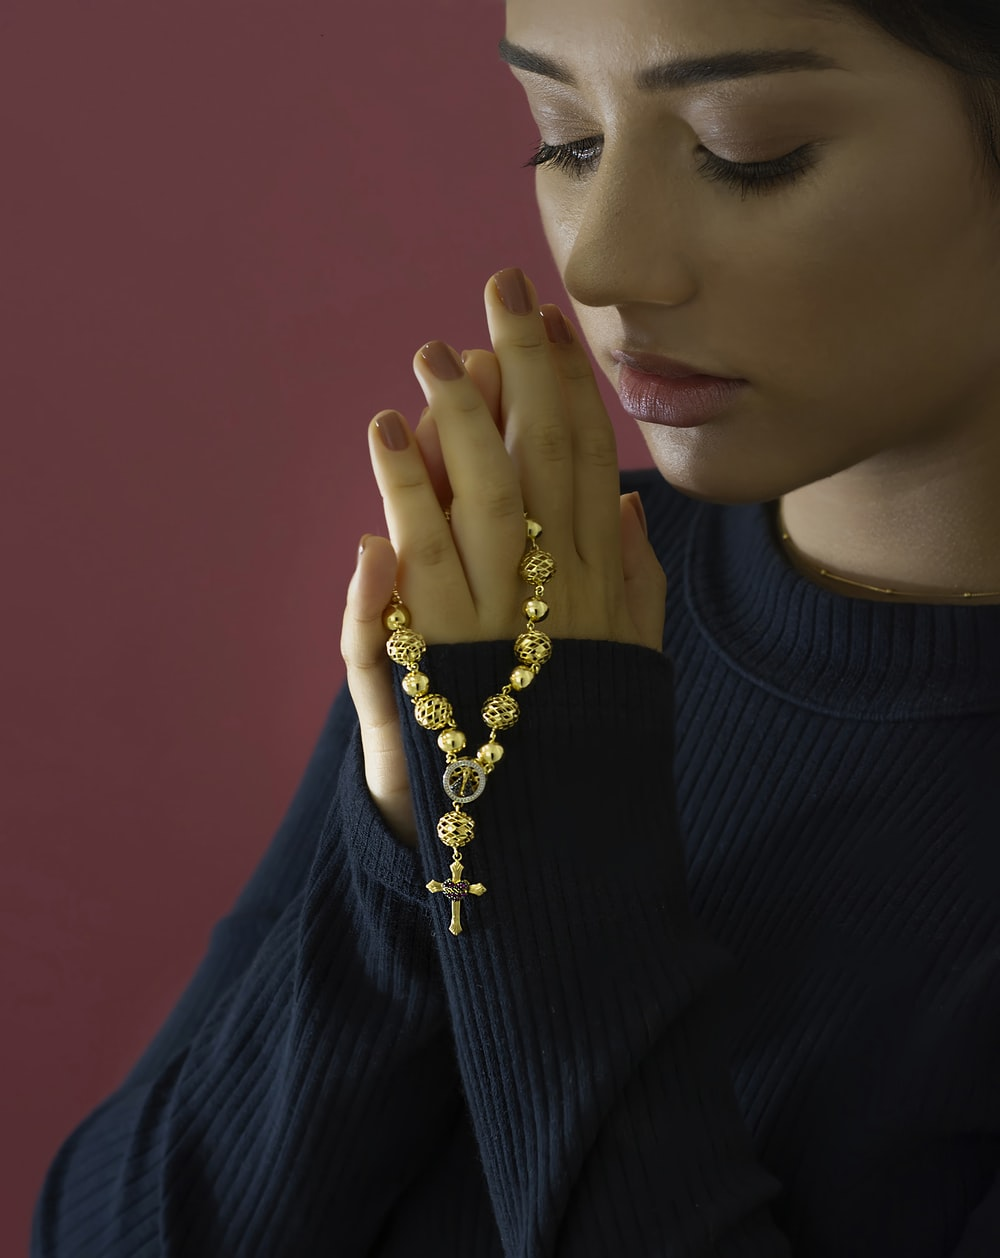 woman in black turtleneck sweater wearing gold necklace